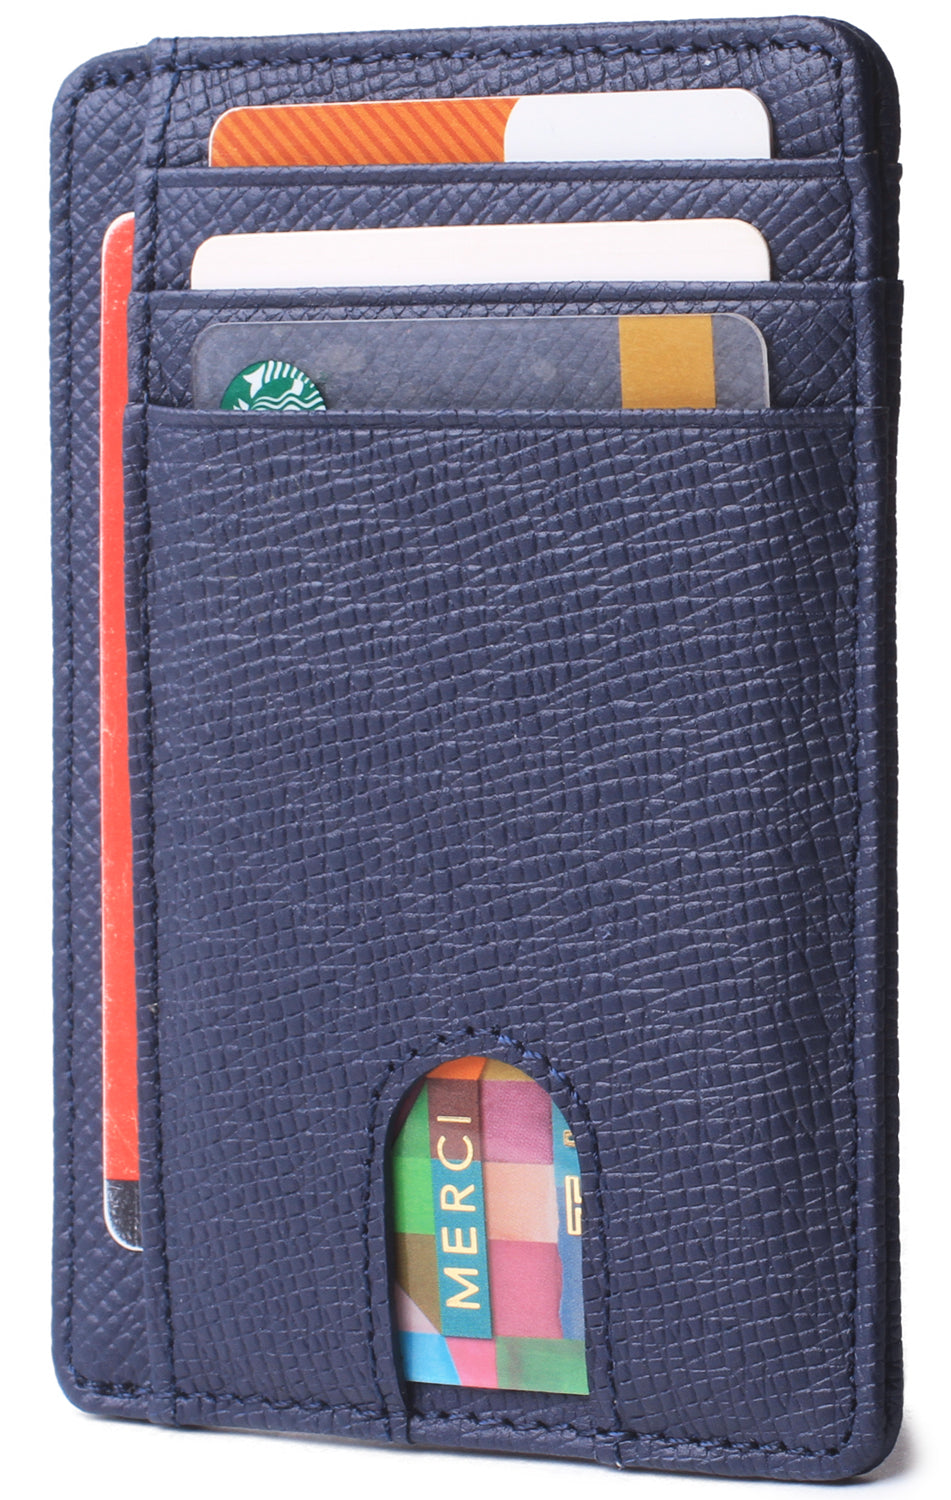 Slim Minimalist Front Pocket RFID Blocking Leather Wallets for Men & Women BG2288 Blue - Borgasets